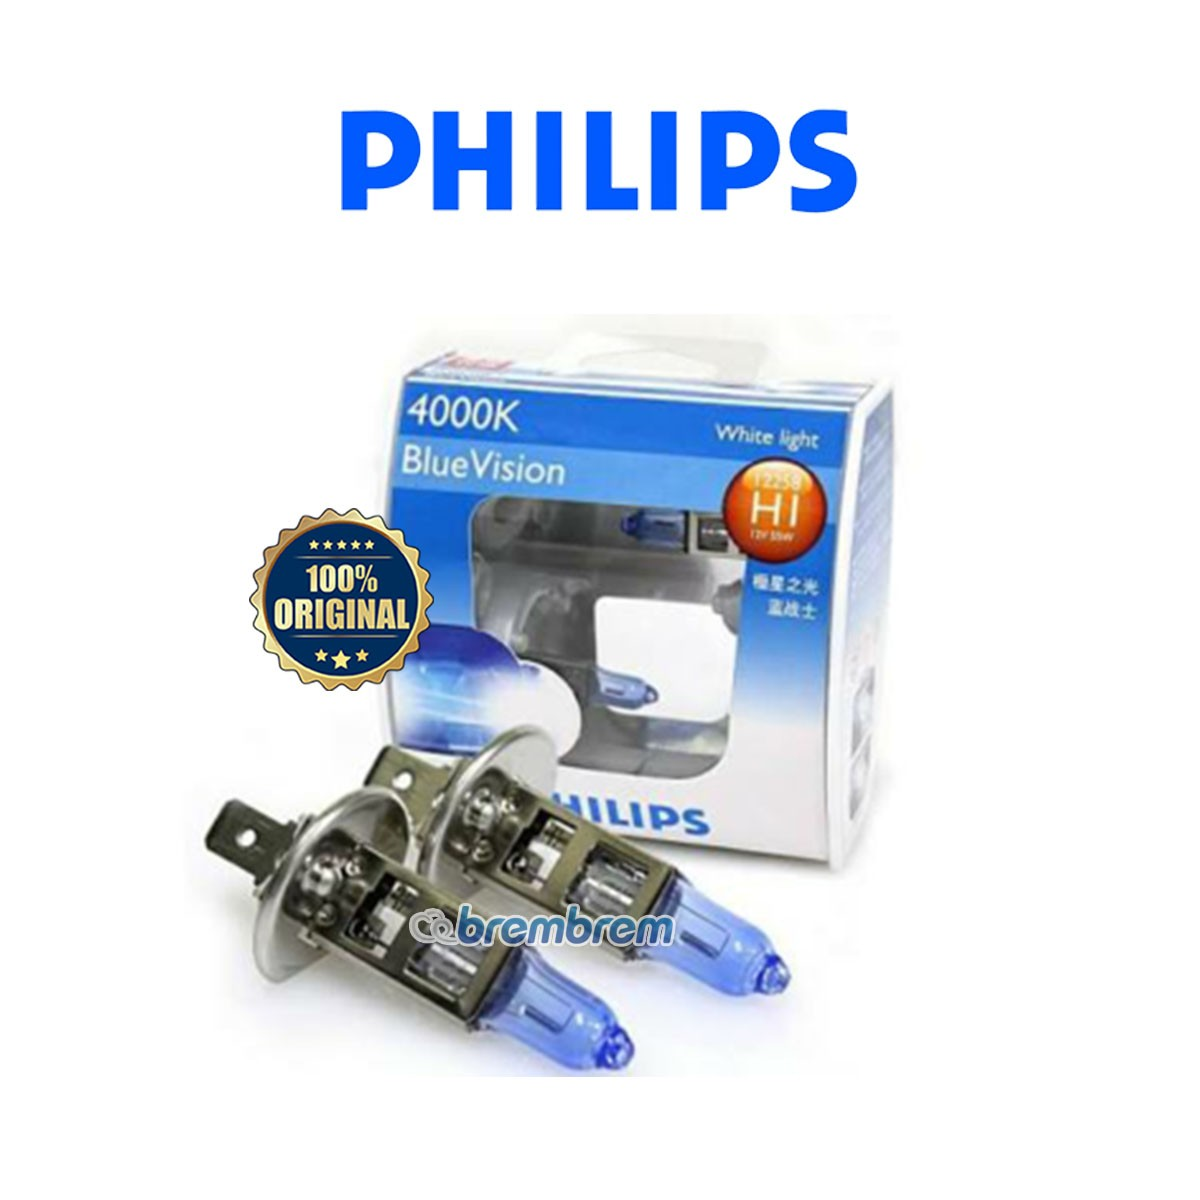 PHILIPS BLUE VISION H1 (4000K) - LAMPU HALOGEN